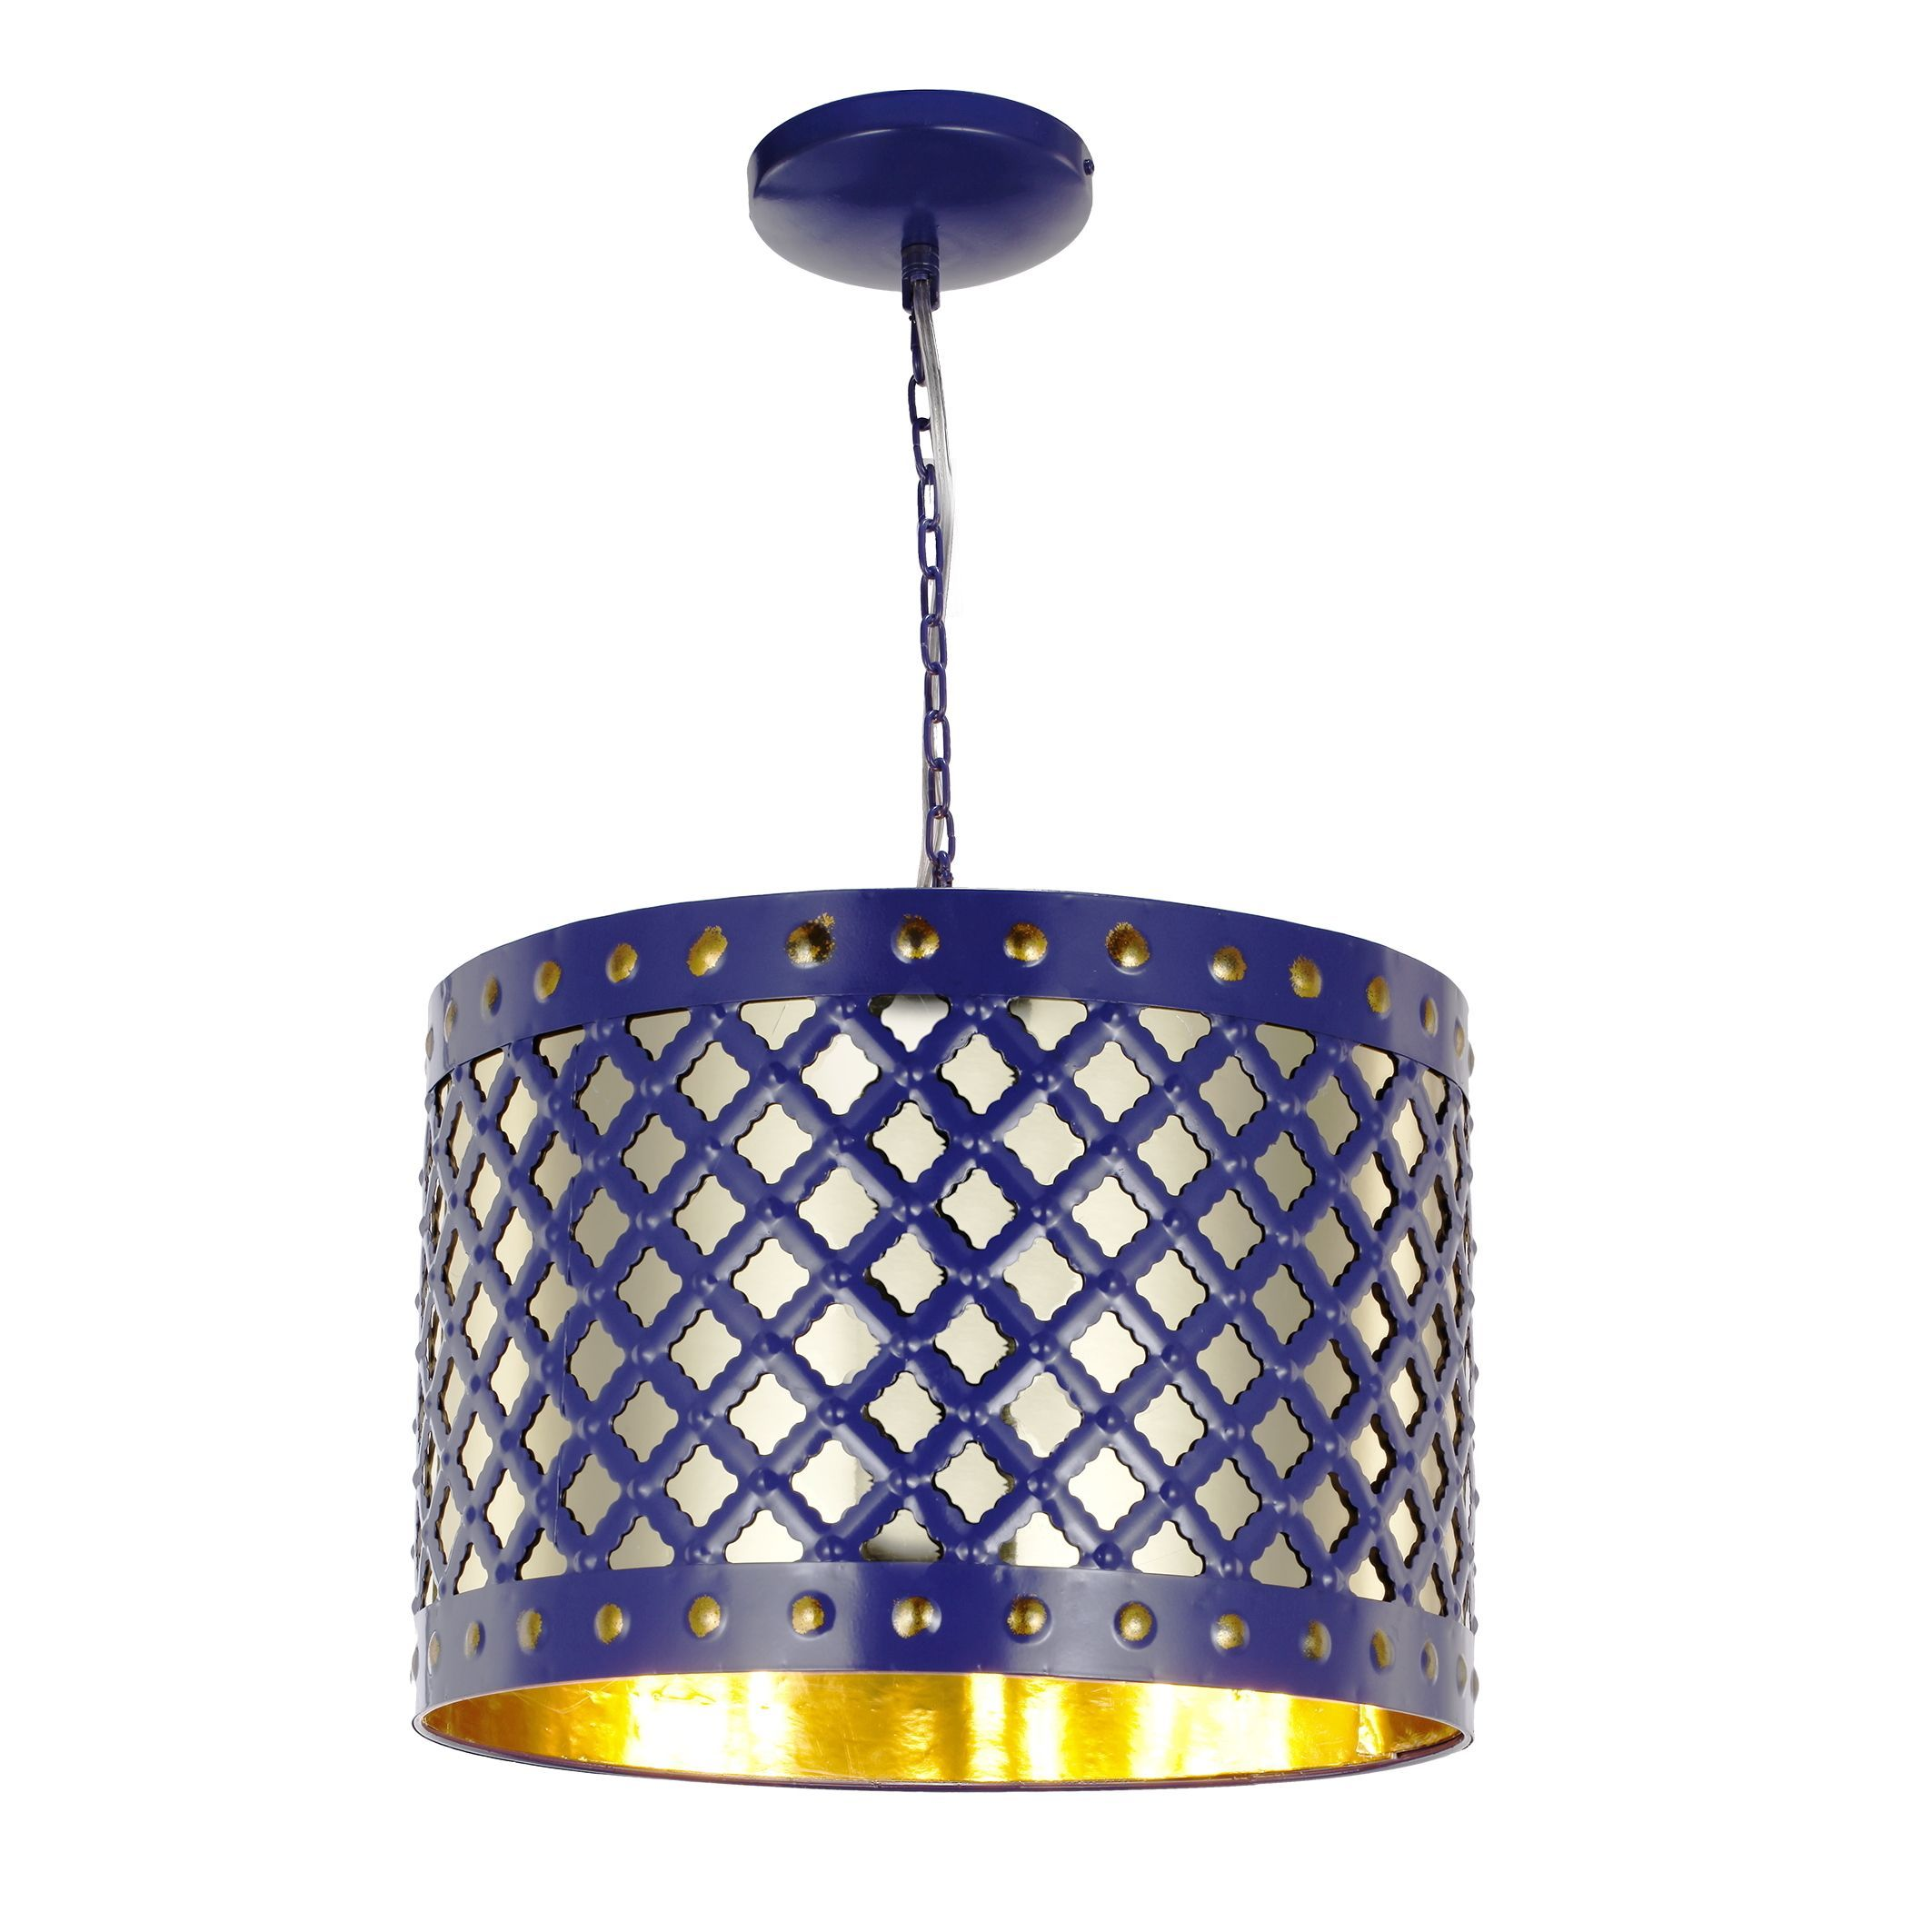 Audriana Metal Grey Ceiling Lamp Blue 16x11 Chandelier